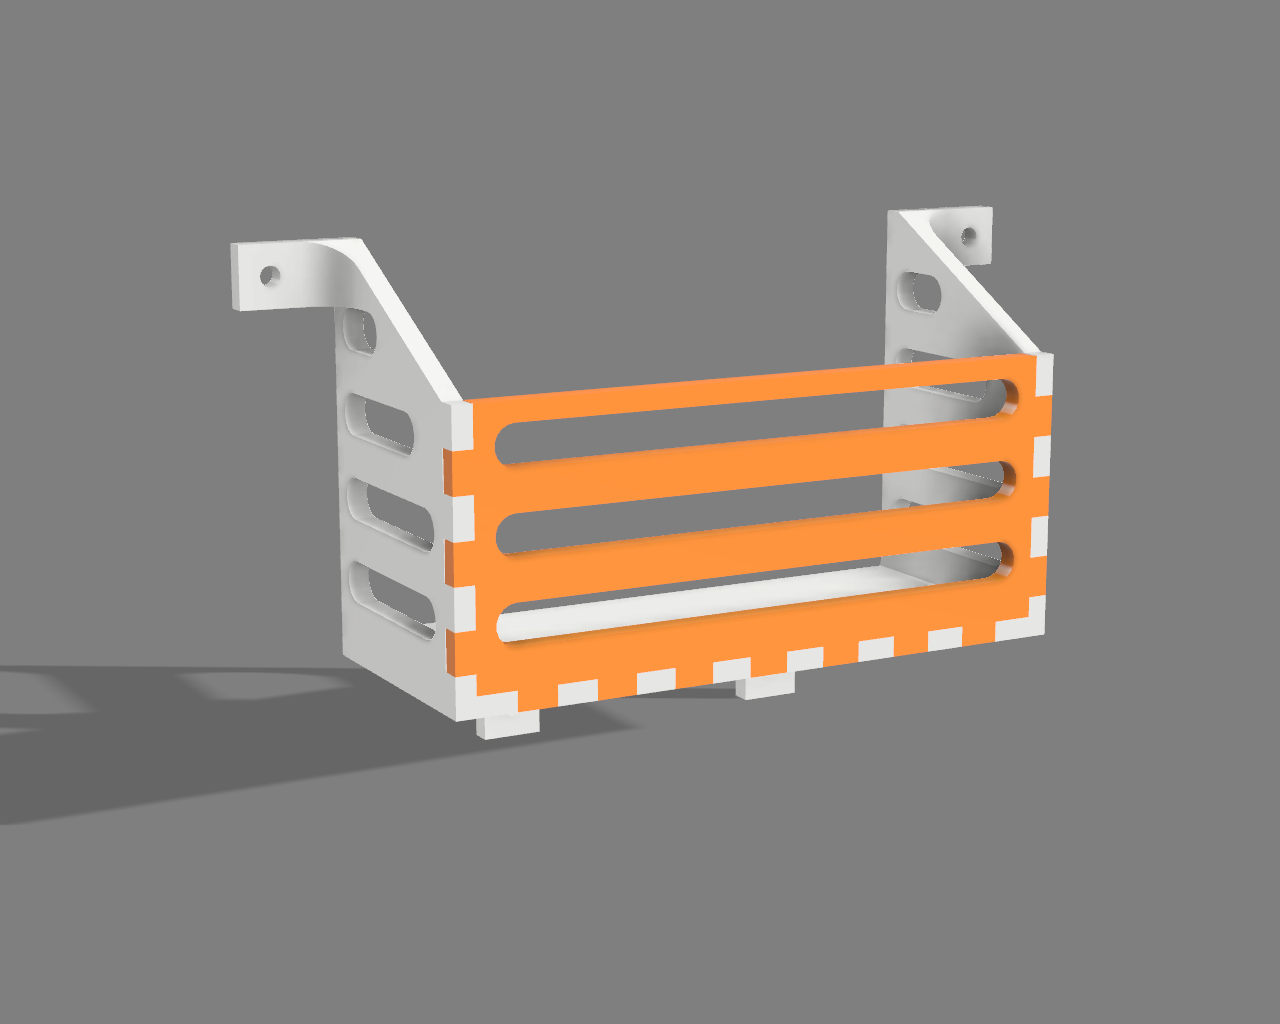 Caja Herramientas v3.png Download free STL file Tools Box • 3D printable object, Zambrana95